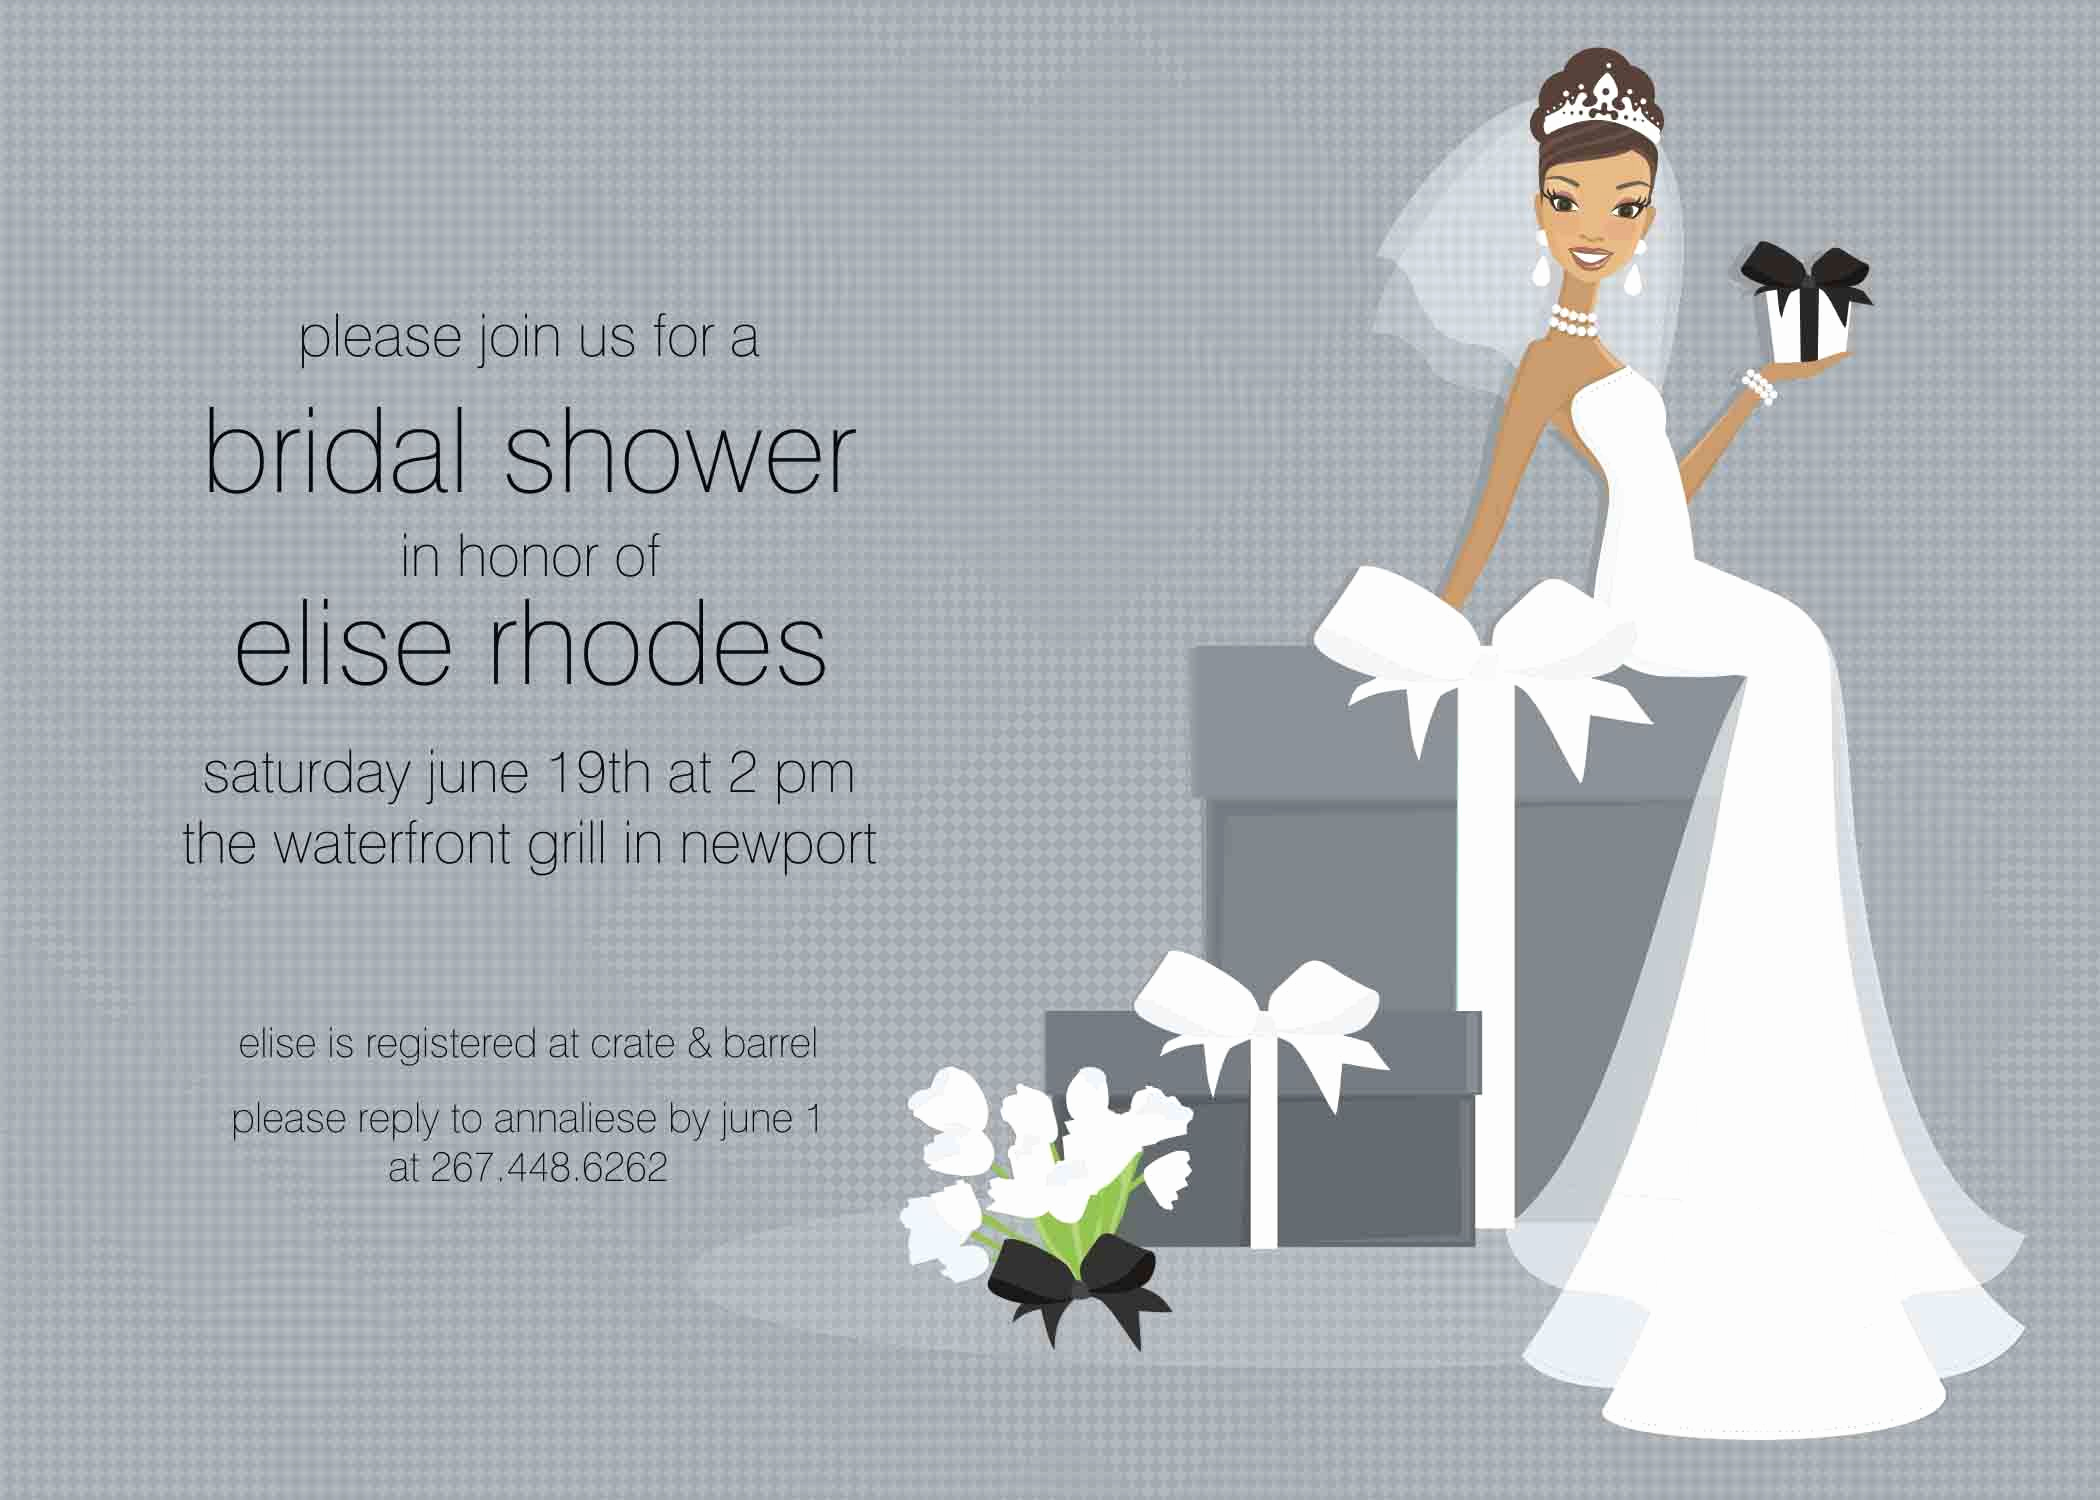 Bridal Shower Invitation Templates New Free Bridal Shower Invitation Templates